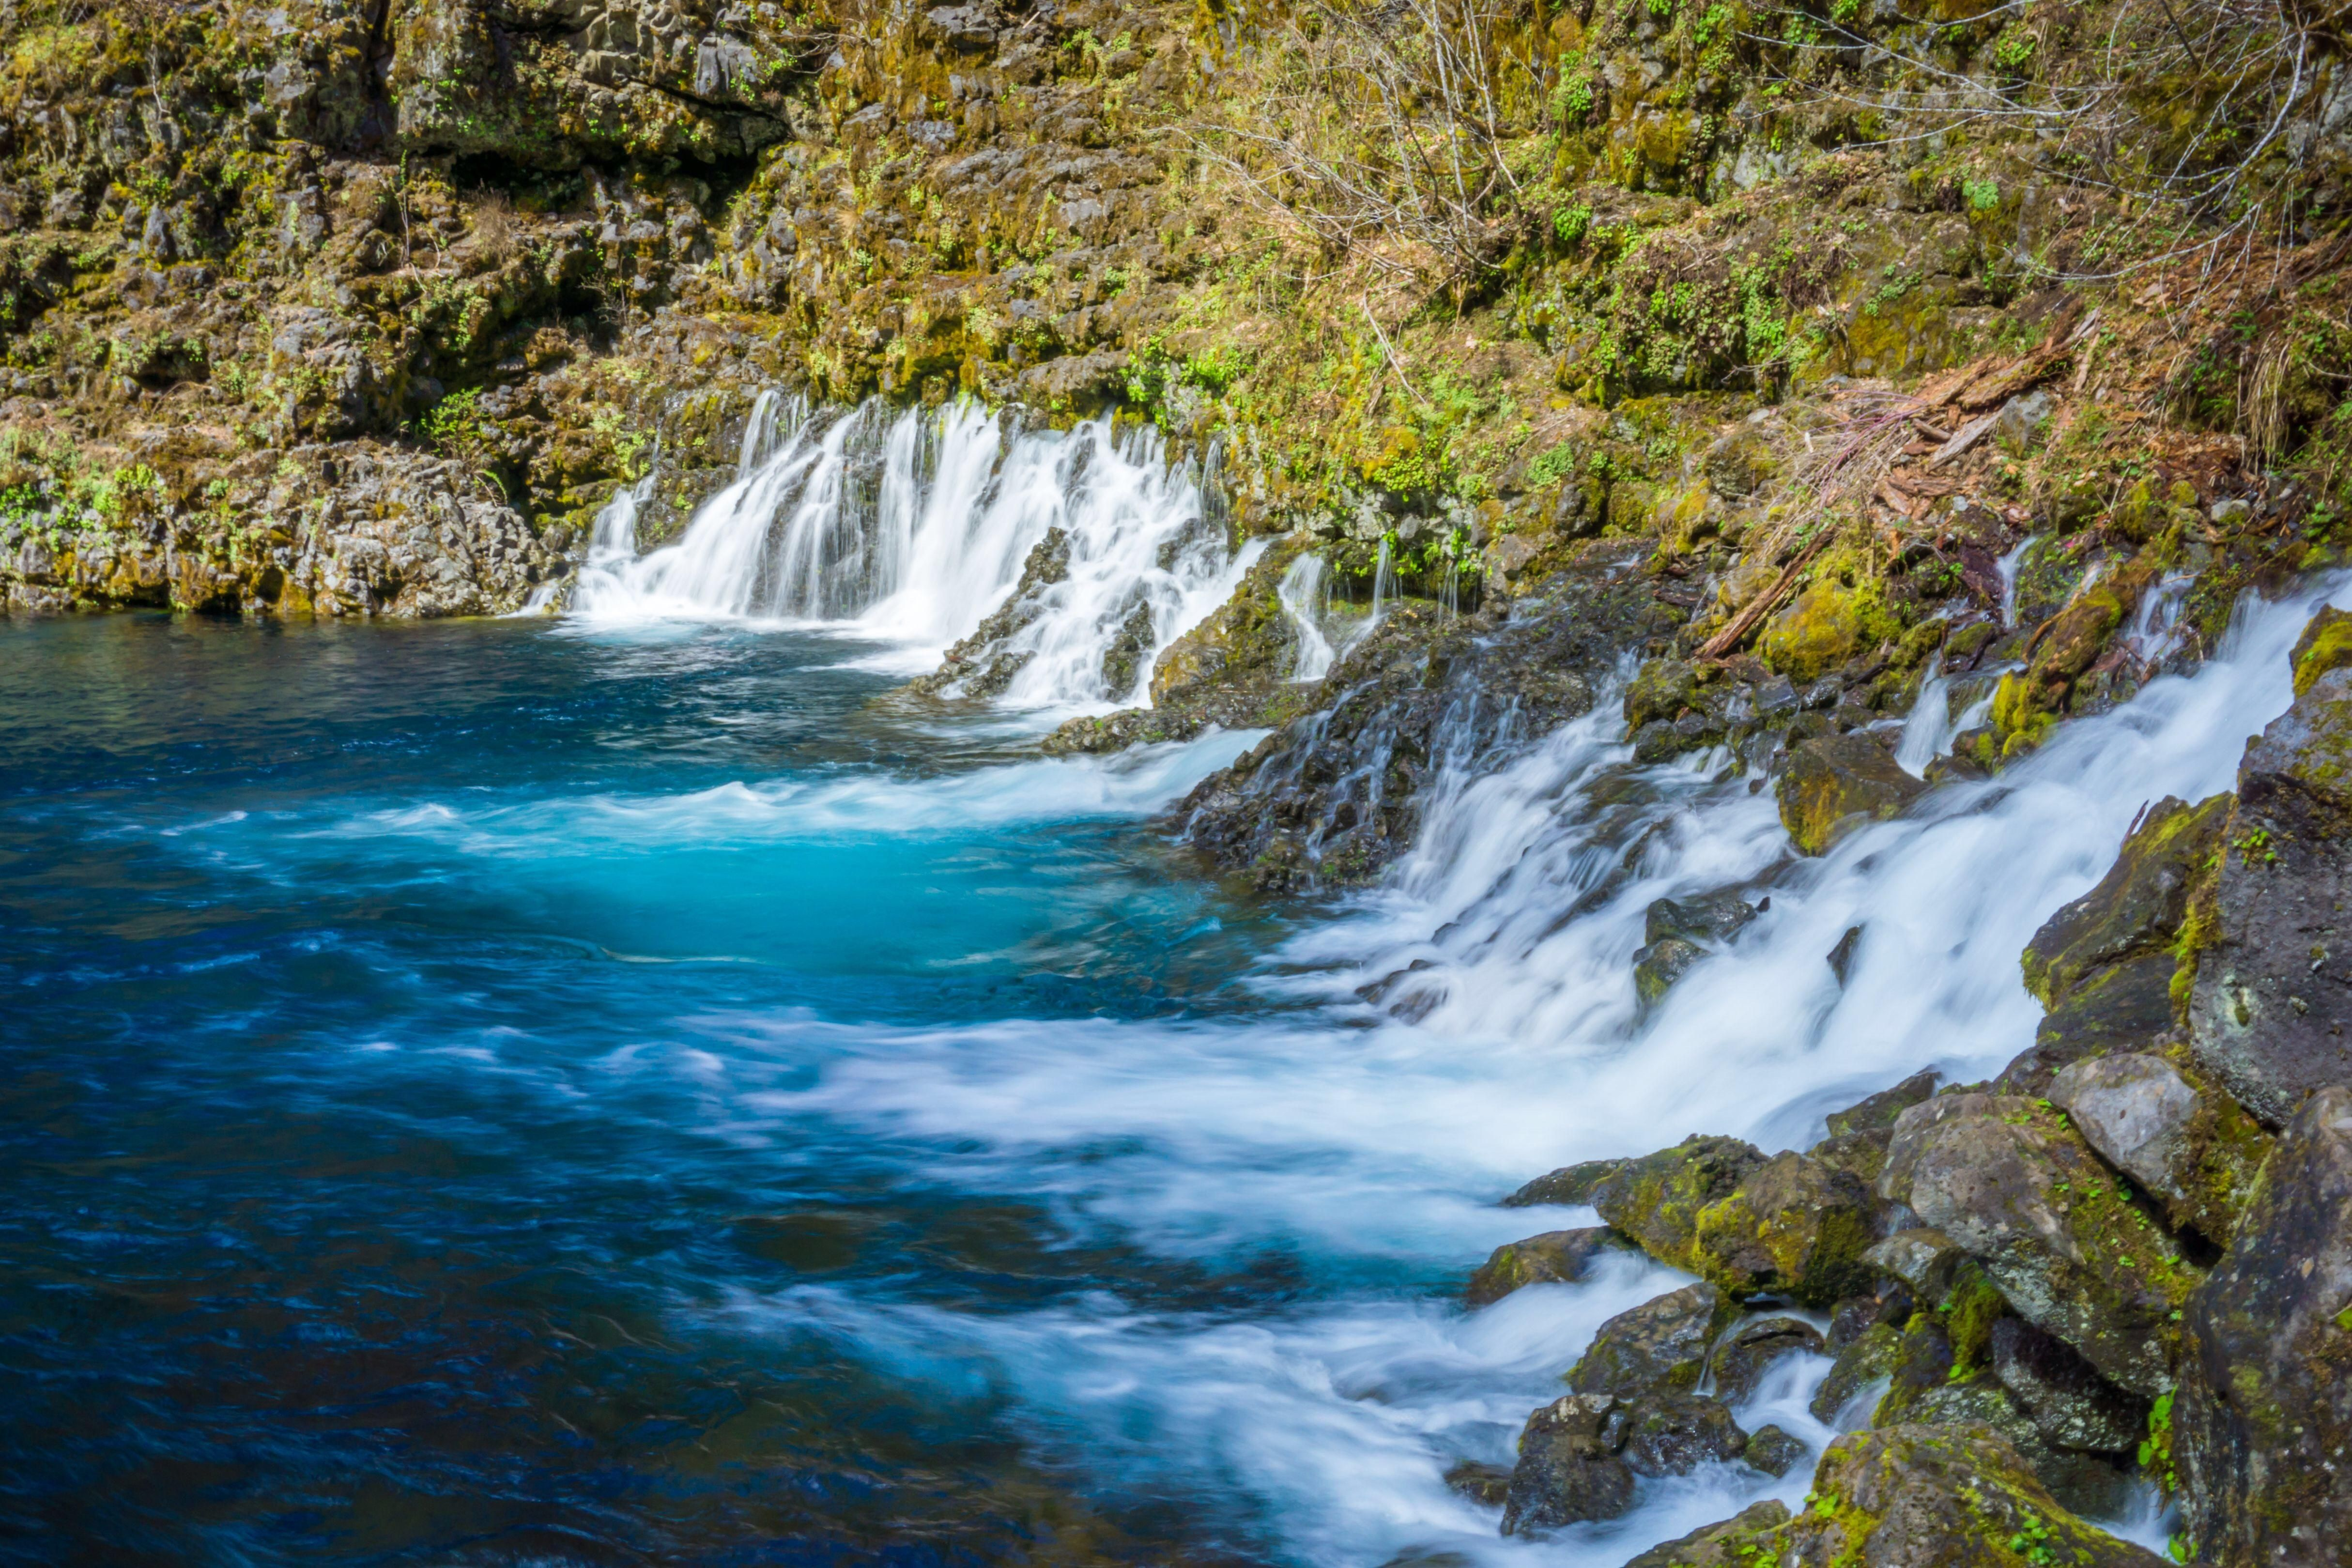 The Falls At Tamolitch Blue Pool In Oregon The Water Comes Straight Through The Lava Rocks